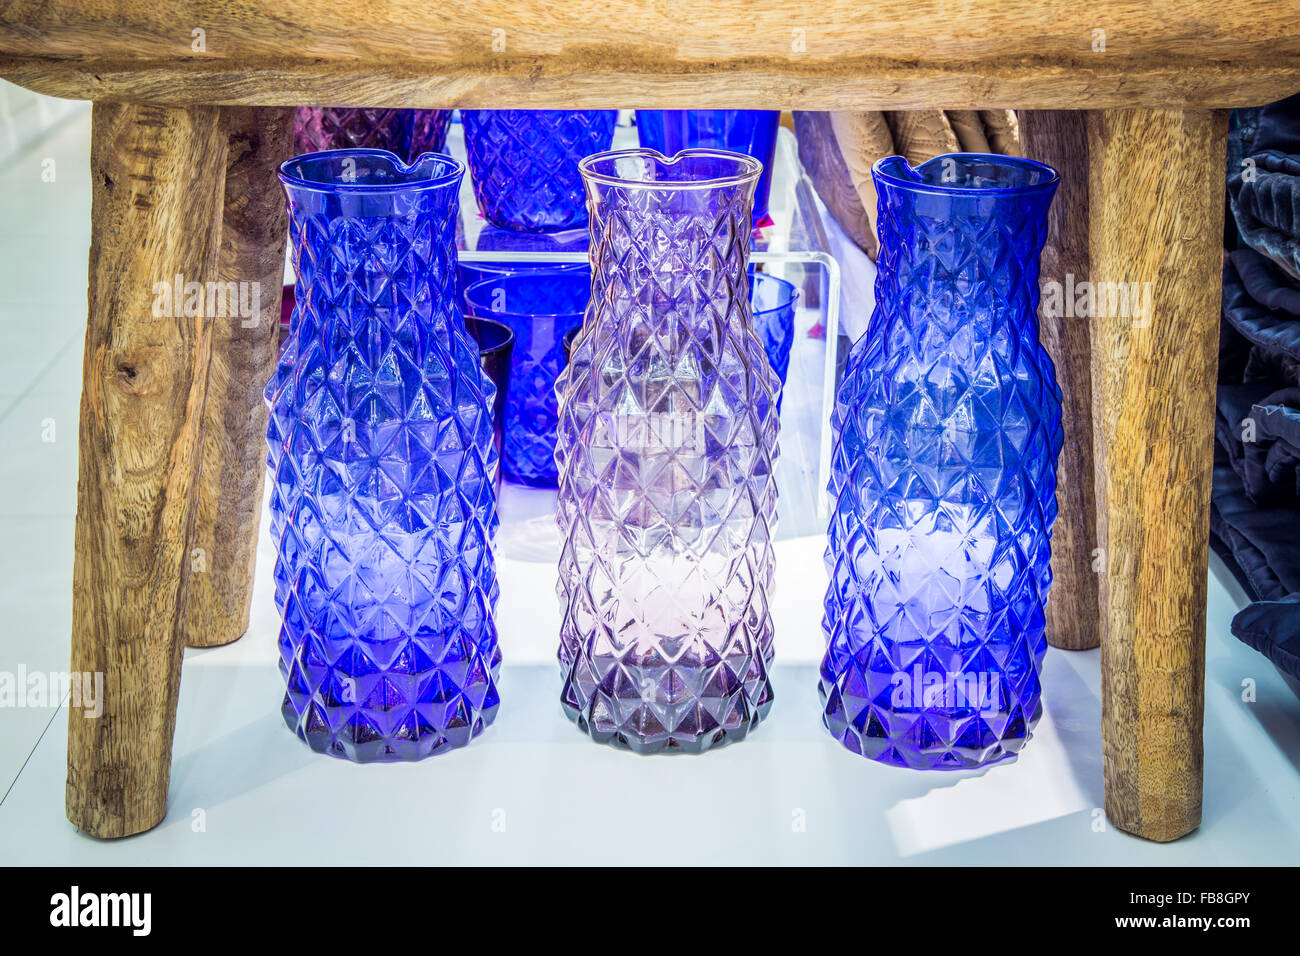 Colored crystal vases stock photo royalty free image 93001859 colored crystal vases reviewsmspy